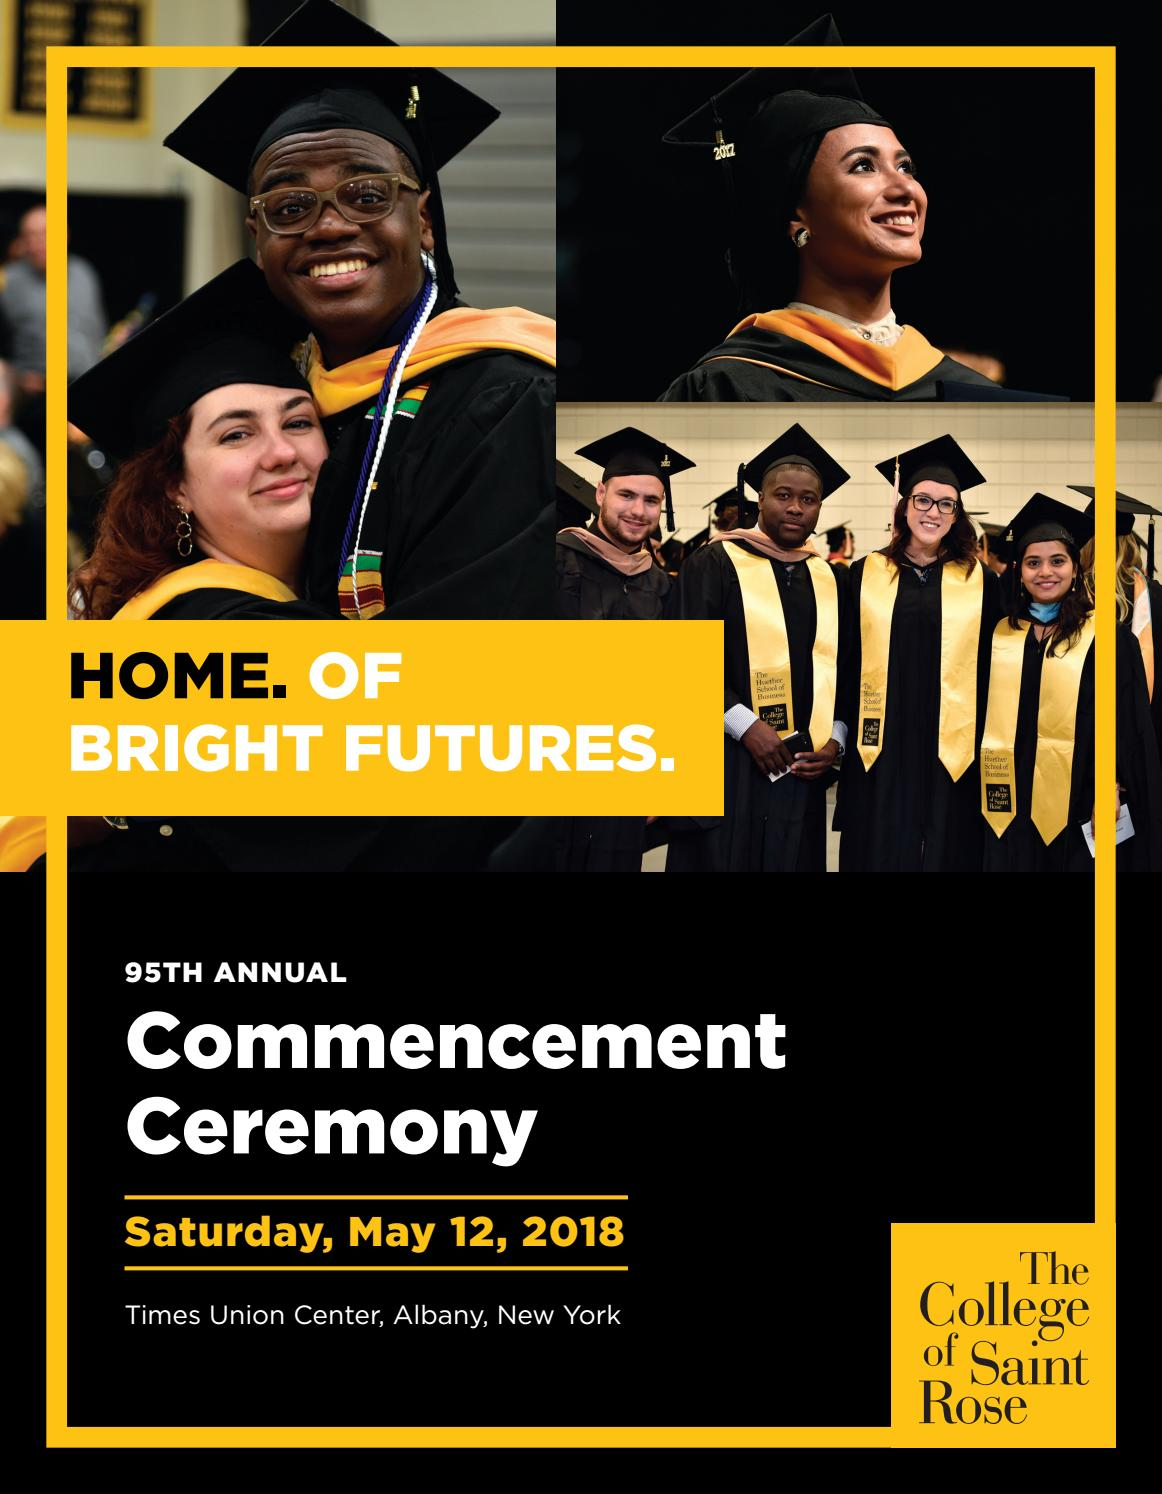 Saint Rose Commencement: May 12, 2018 by The College of Saint Rose